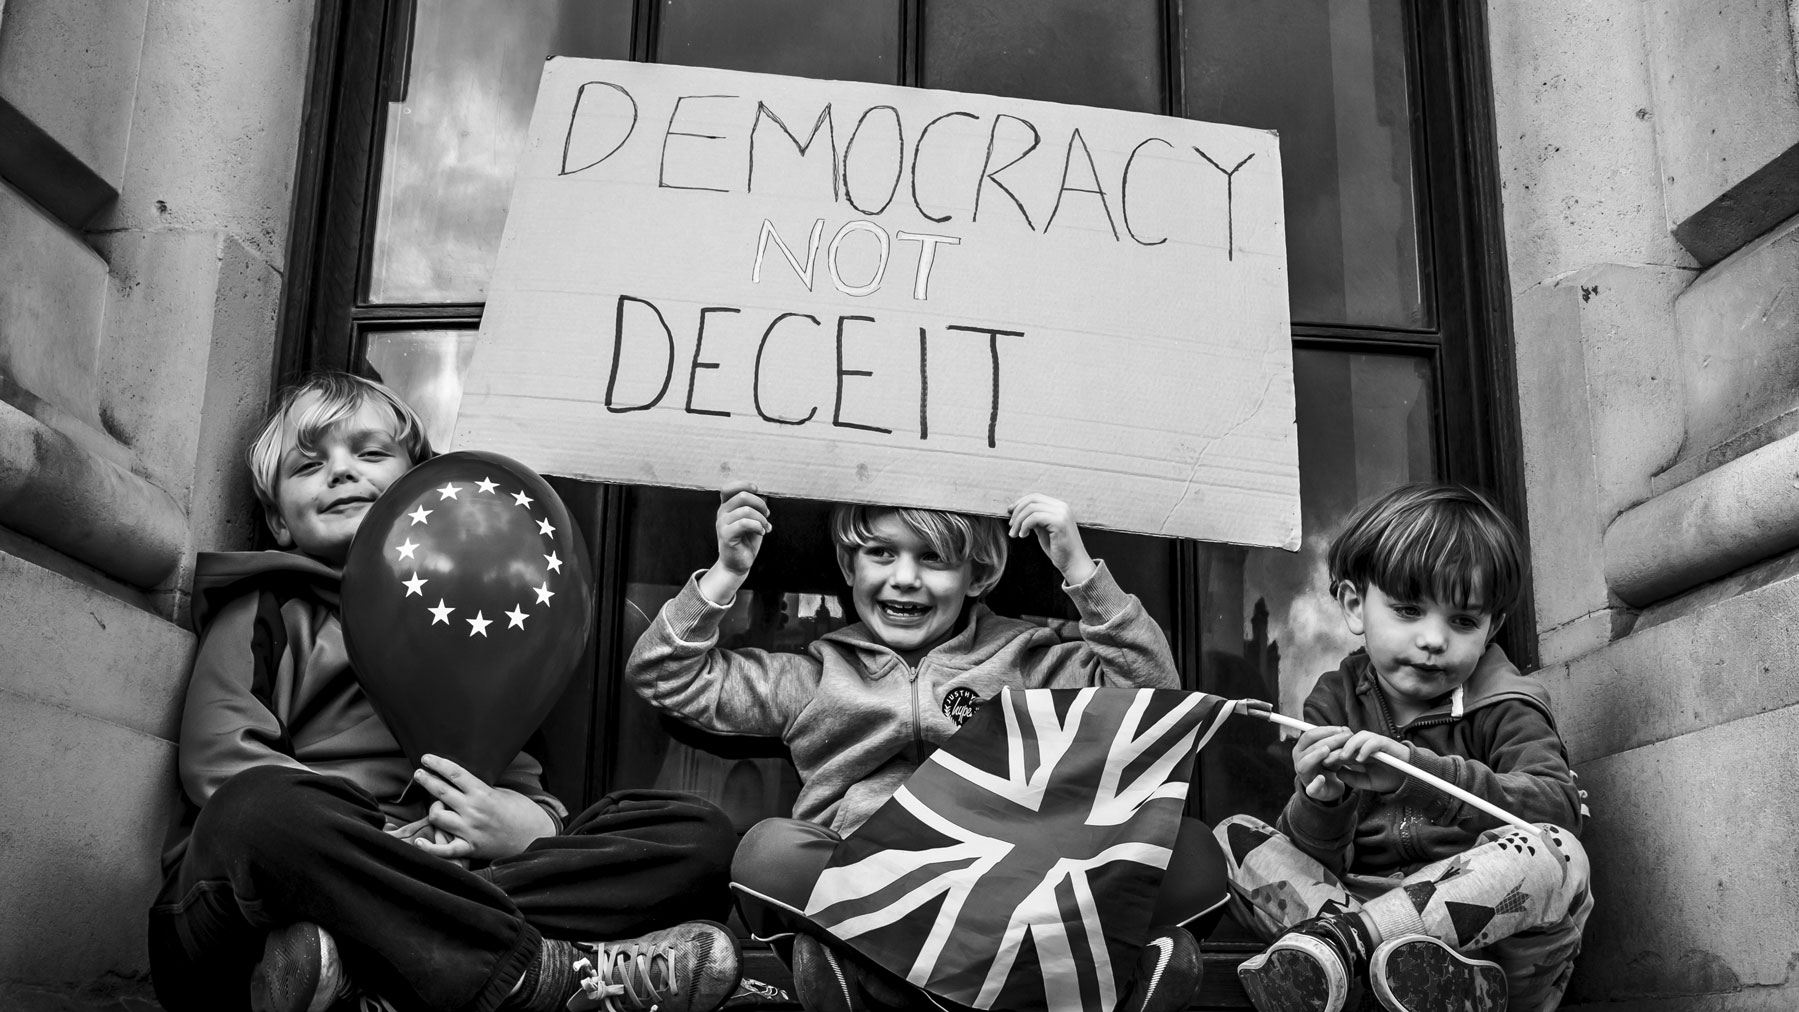 Edit_ARK1701_Democracy-Not-Deceit_b&w_Cr